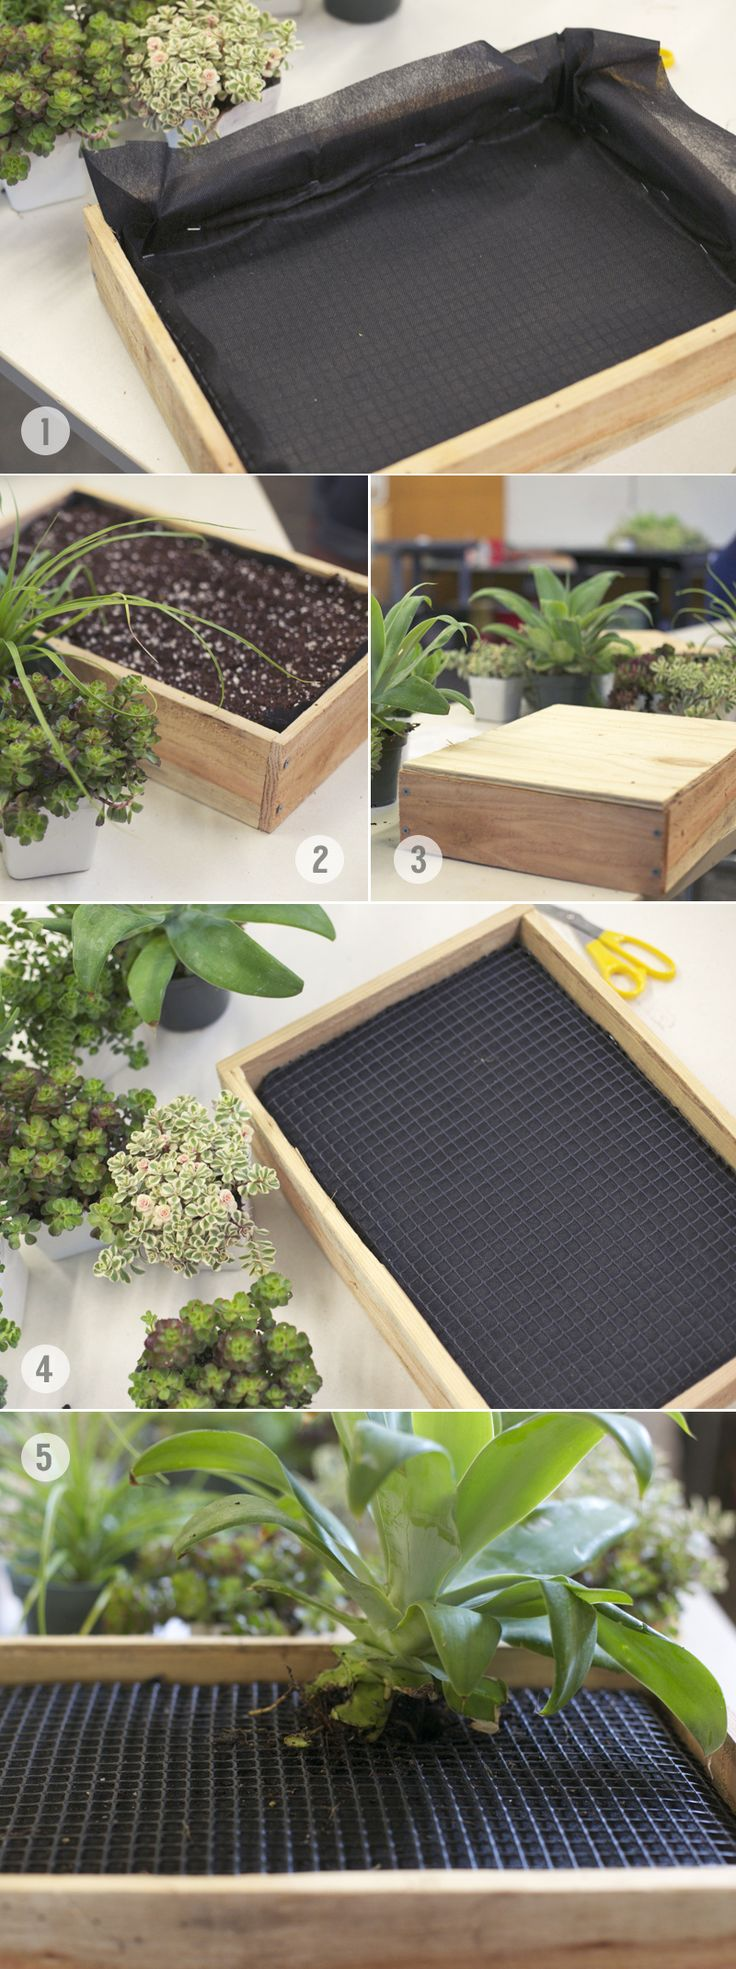 How to create a sturdy frame for planting a vertical succulent garden #diy #succulents #gardening